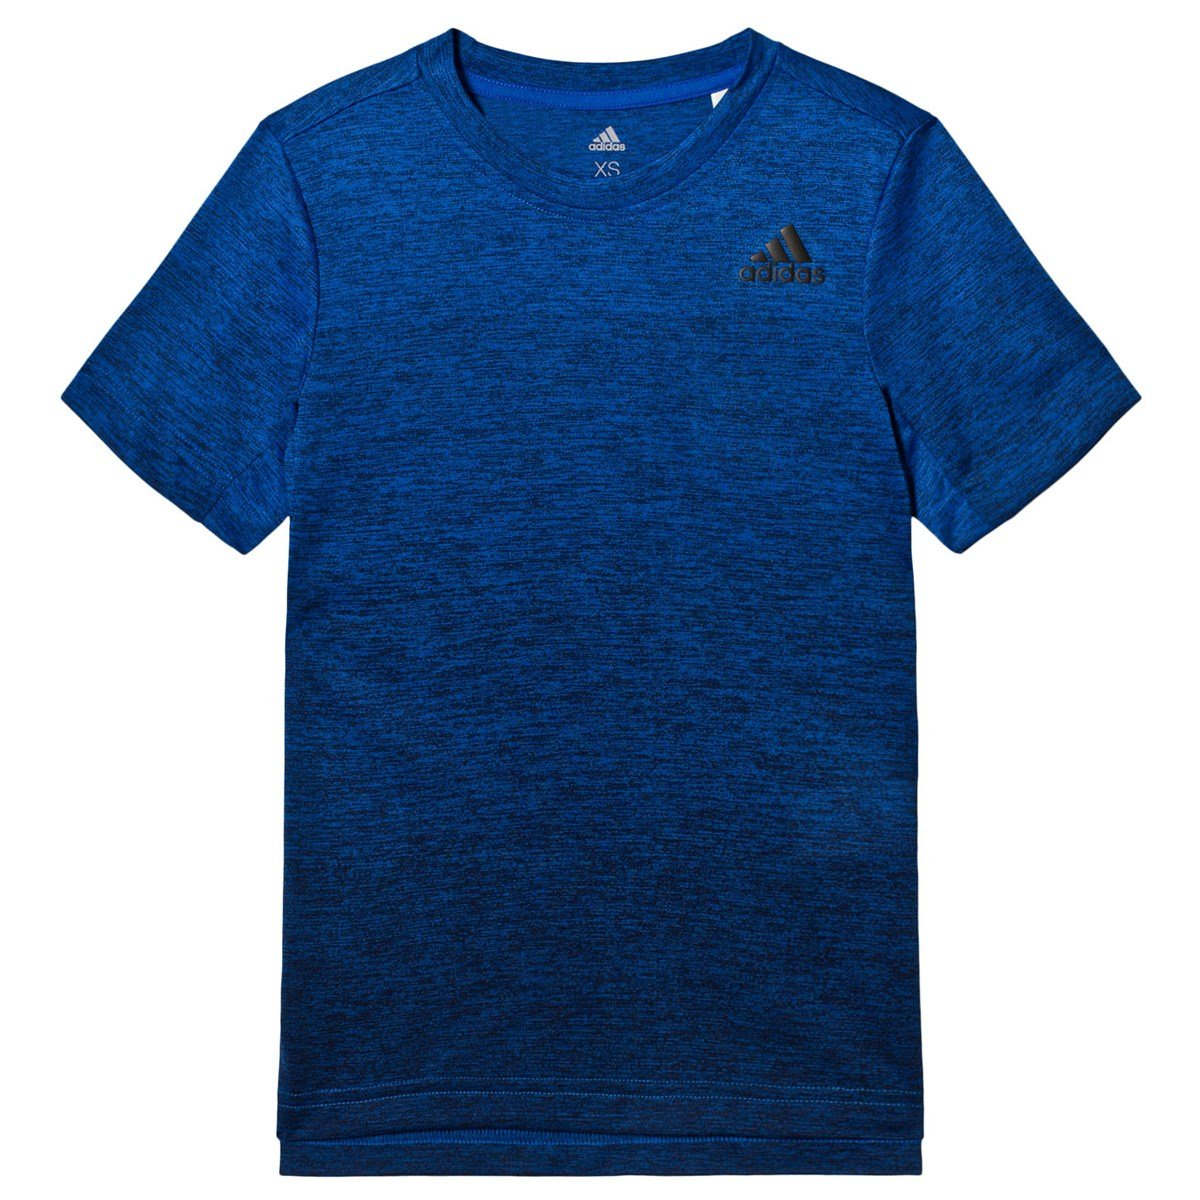 finest selection 7a2f2 8db40 adidas performance navy fade climalite® training tee